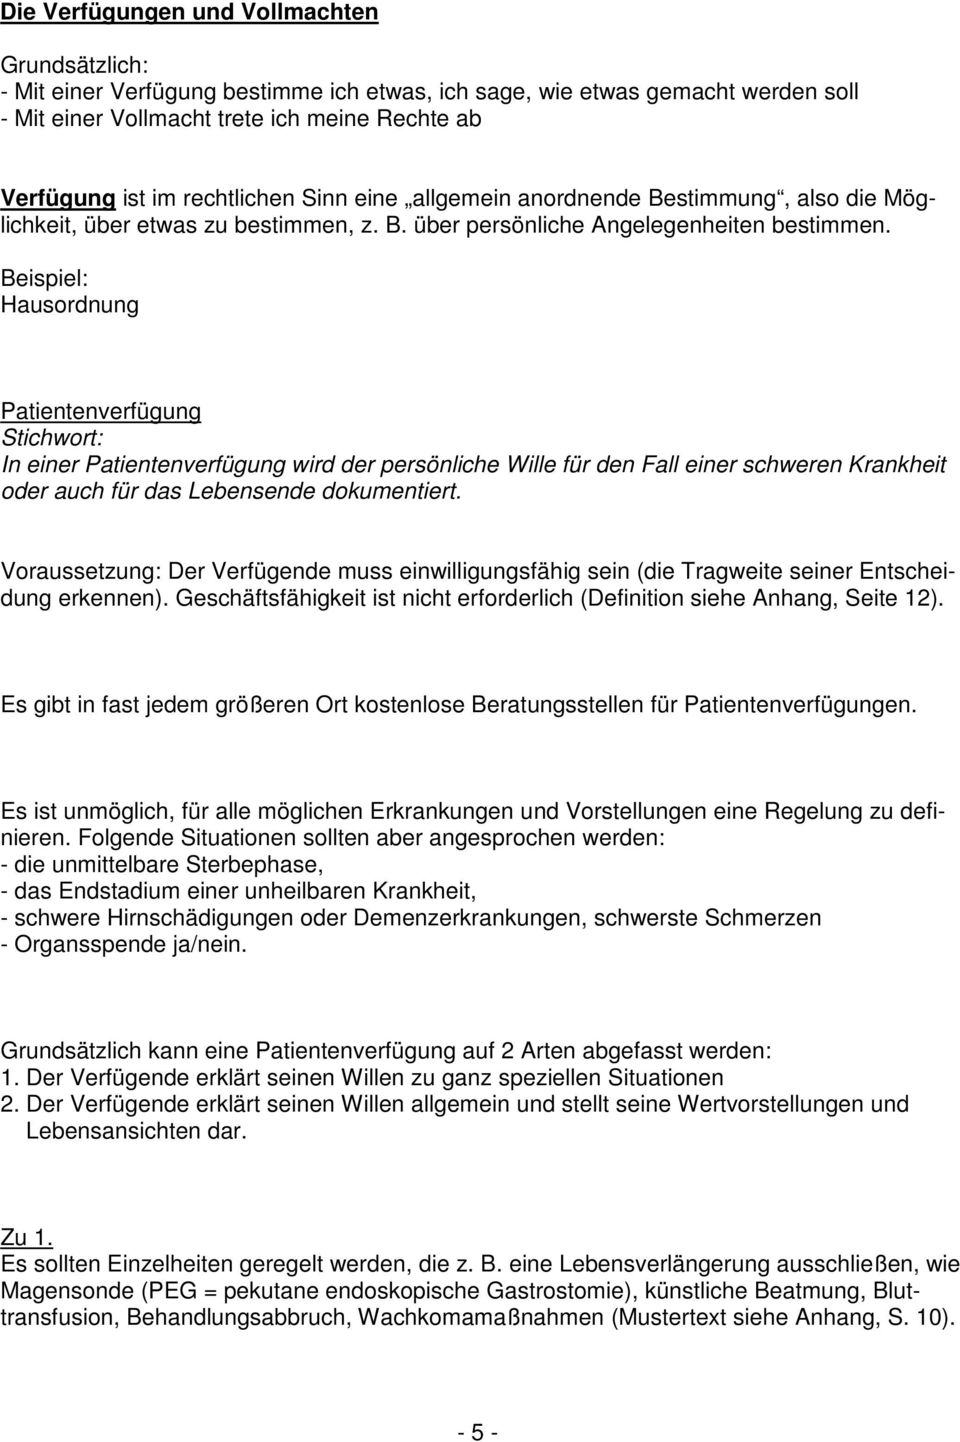 Tolle Vorlage Für Willen Ideen - Entry Level Resume Vorlagen ...